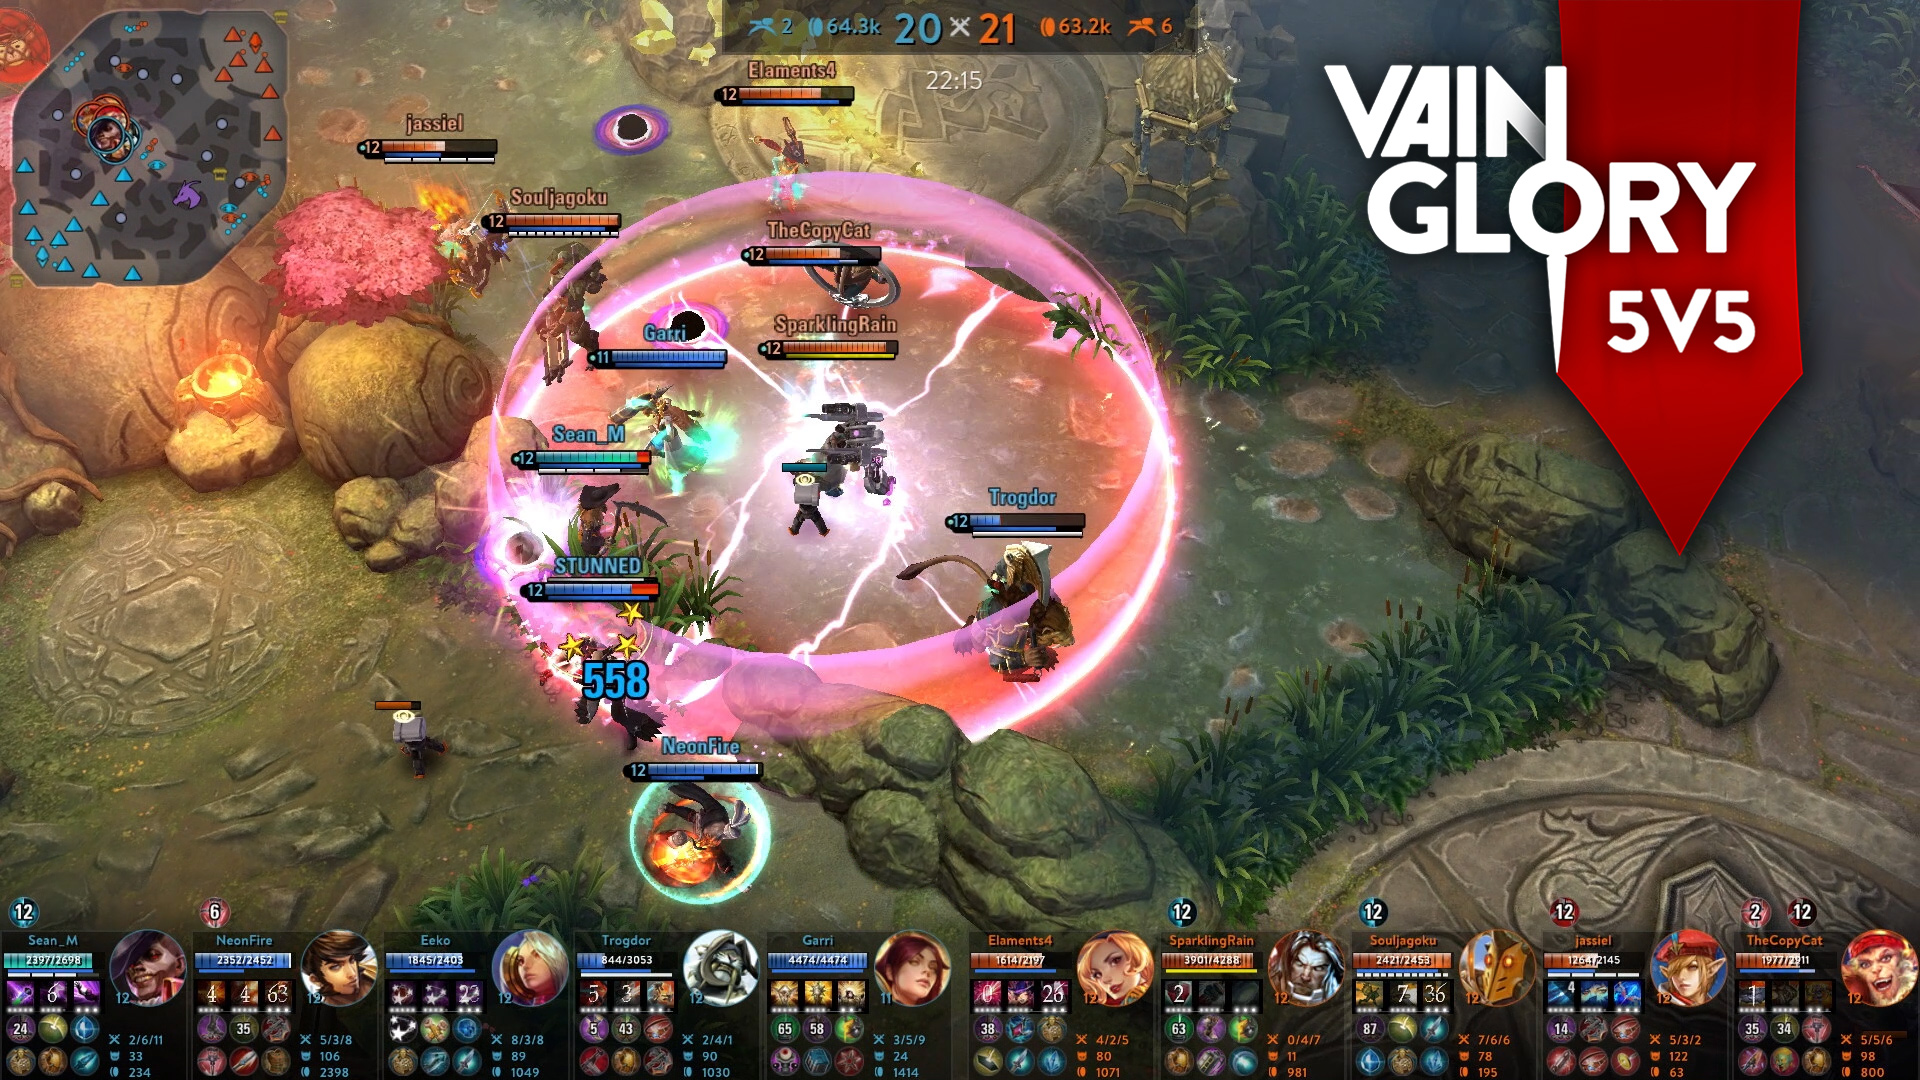 vainglory 5v5 preview 03